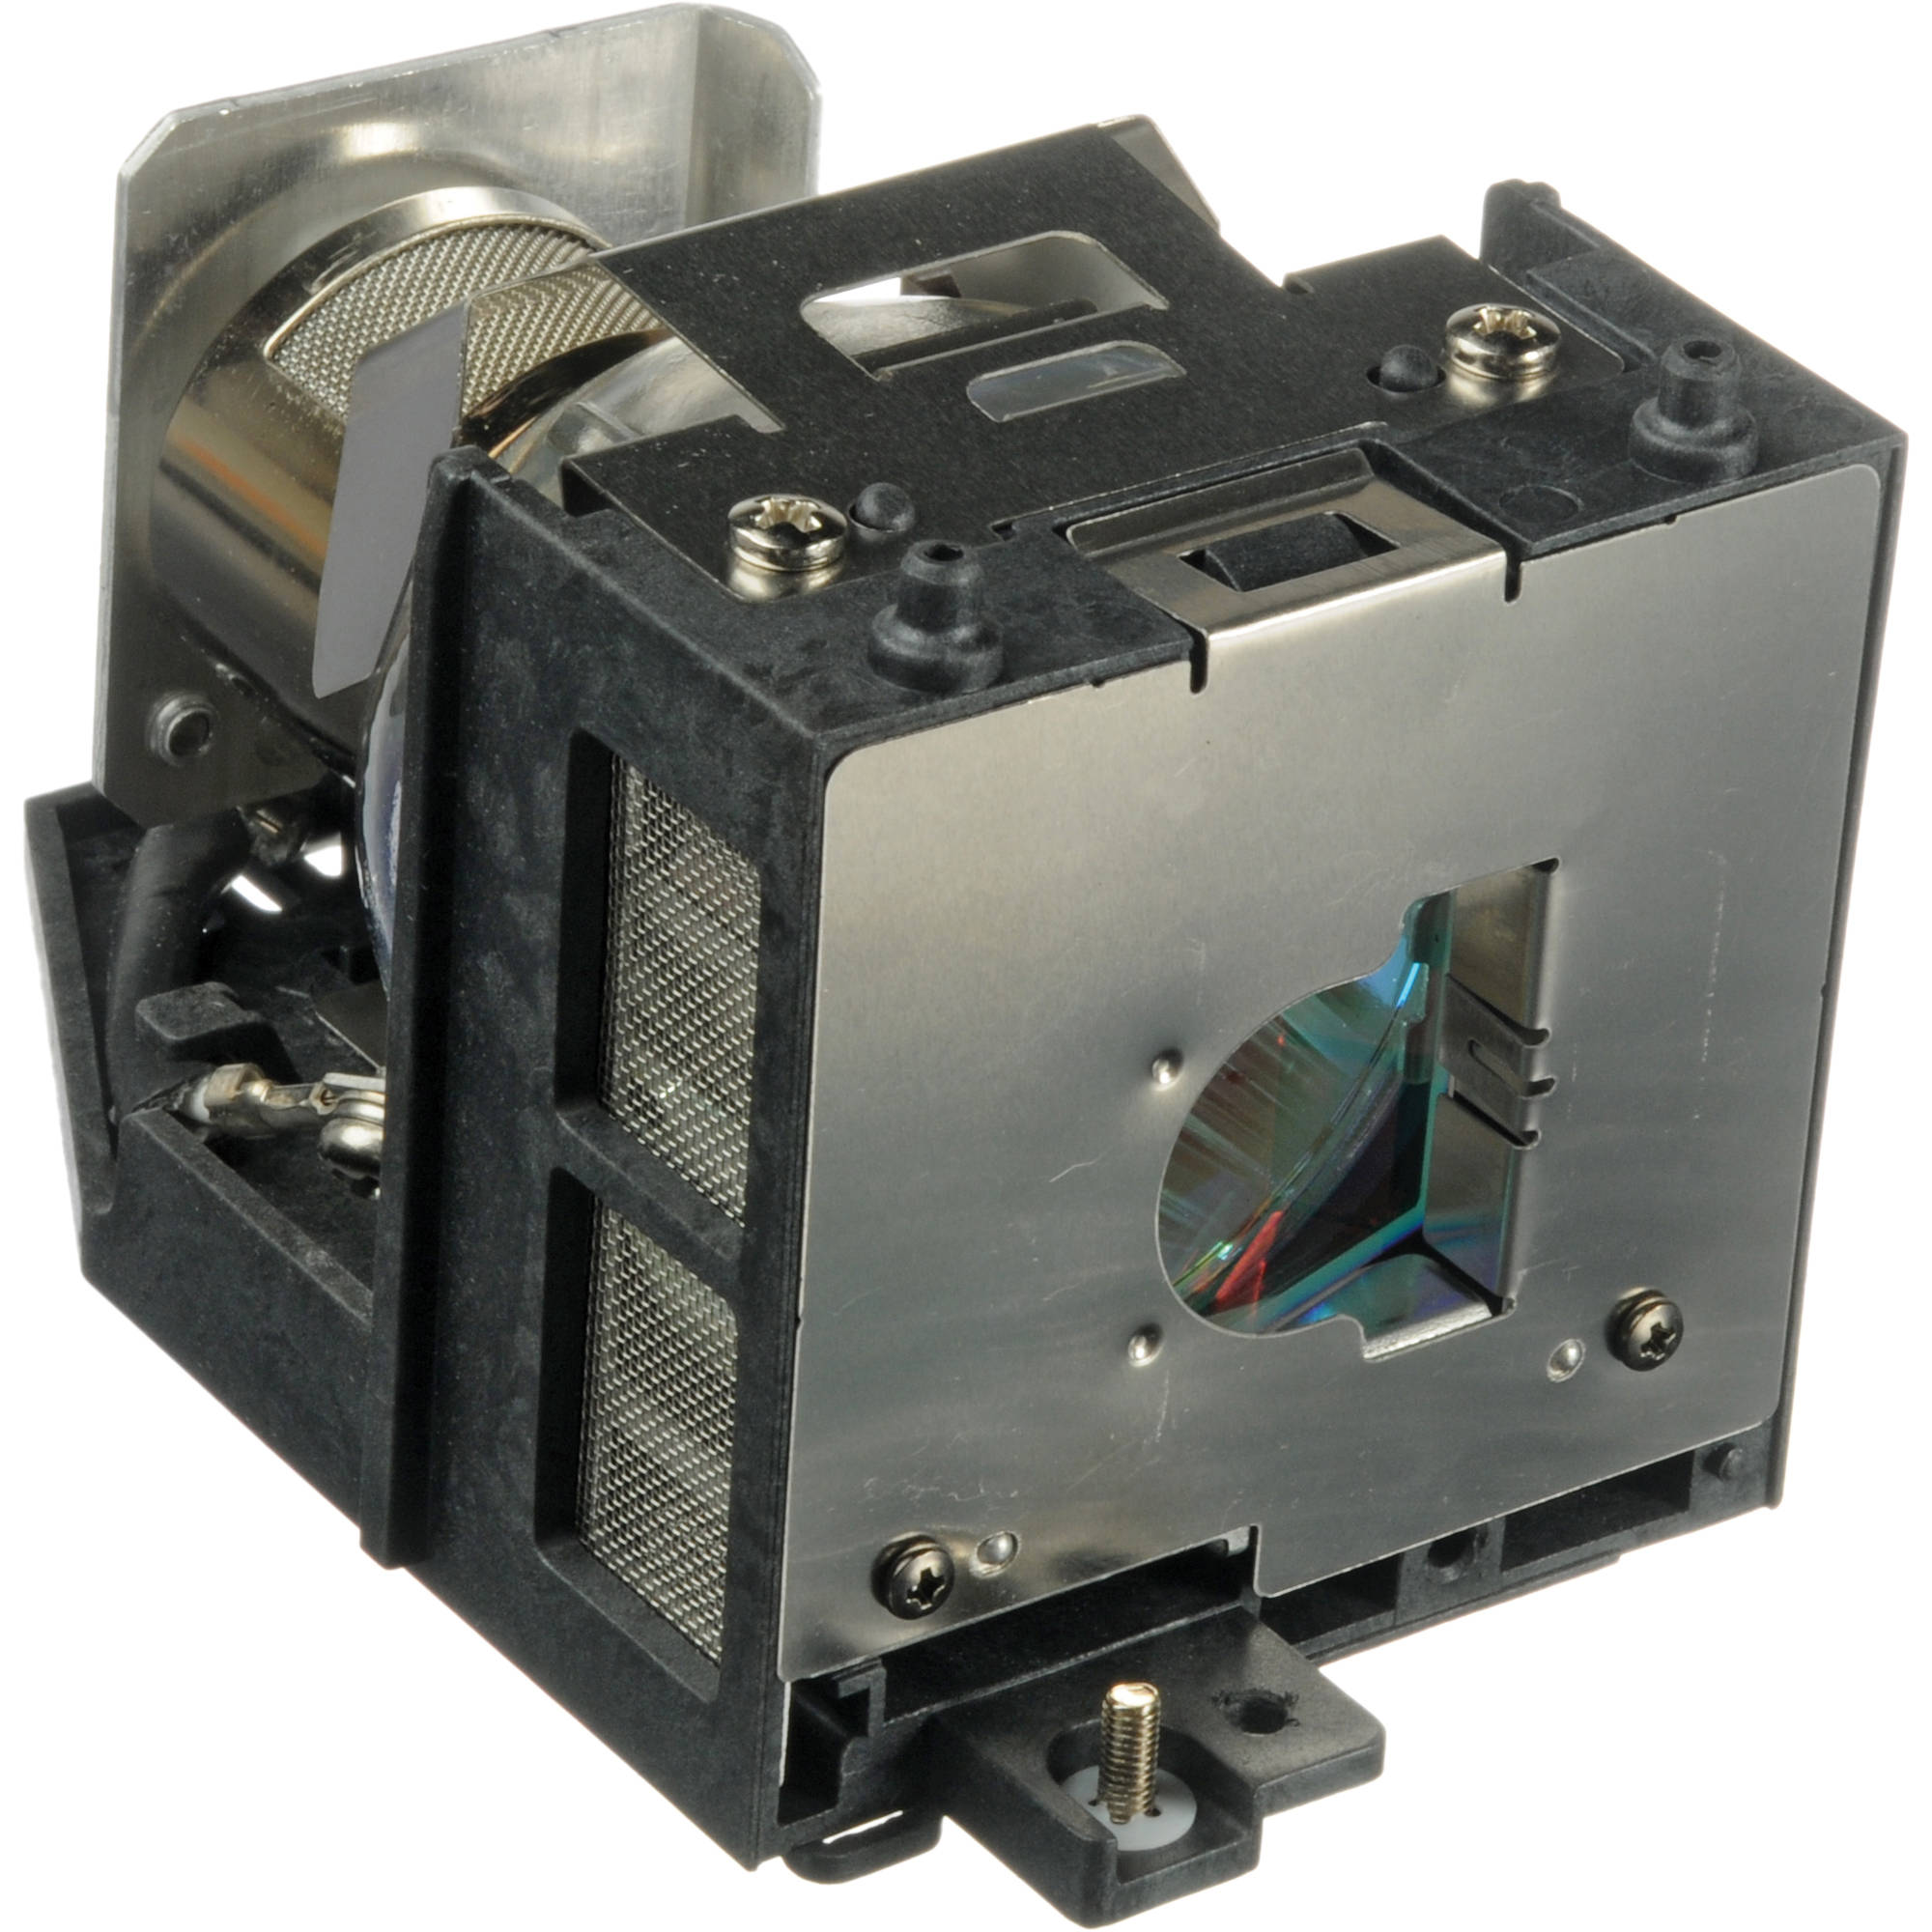 Projector lamp for sharp an-c55lp oem bulb with housing.